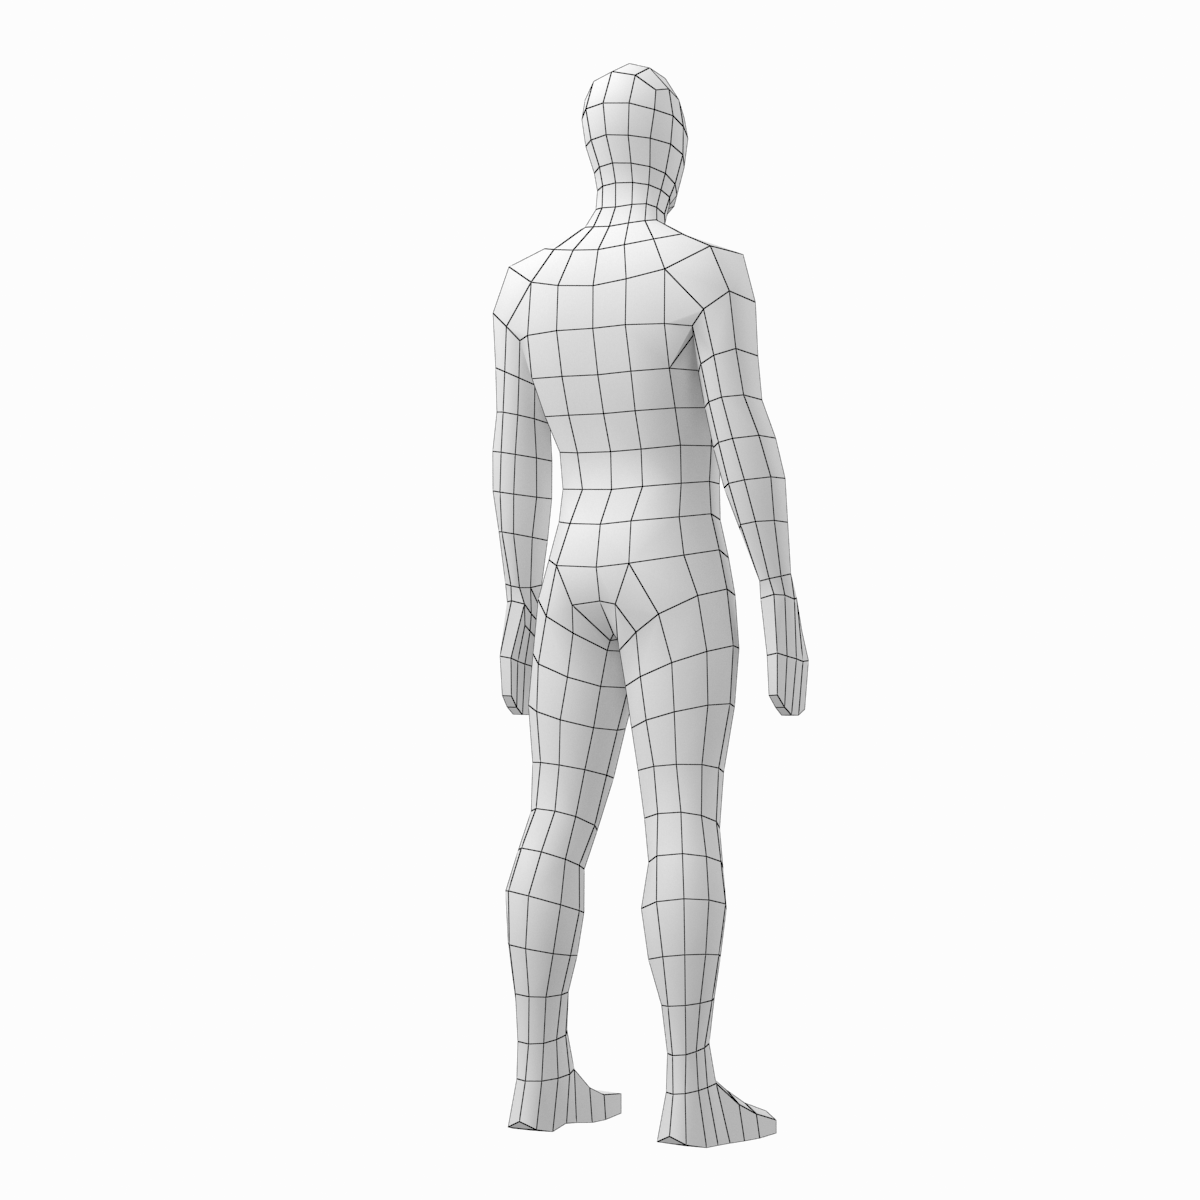 Male and Female Low Poly Base Mesh in Rest Pose